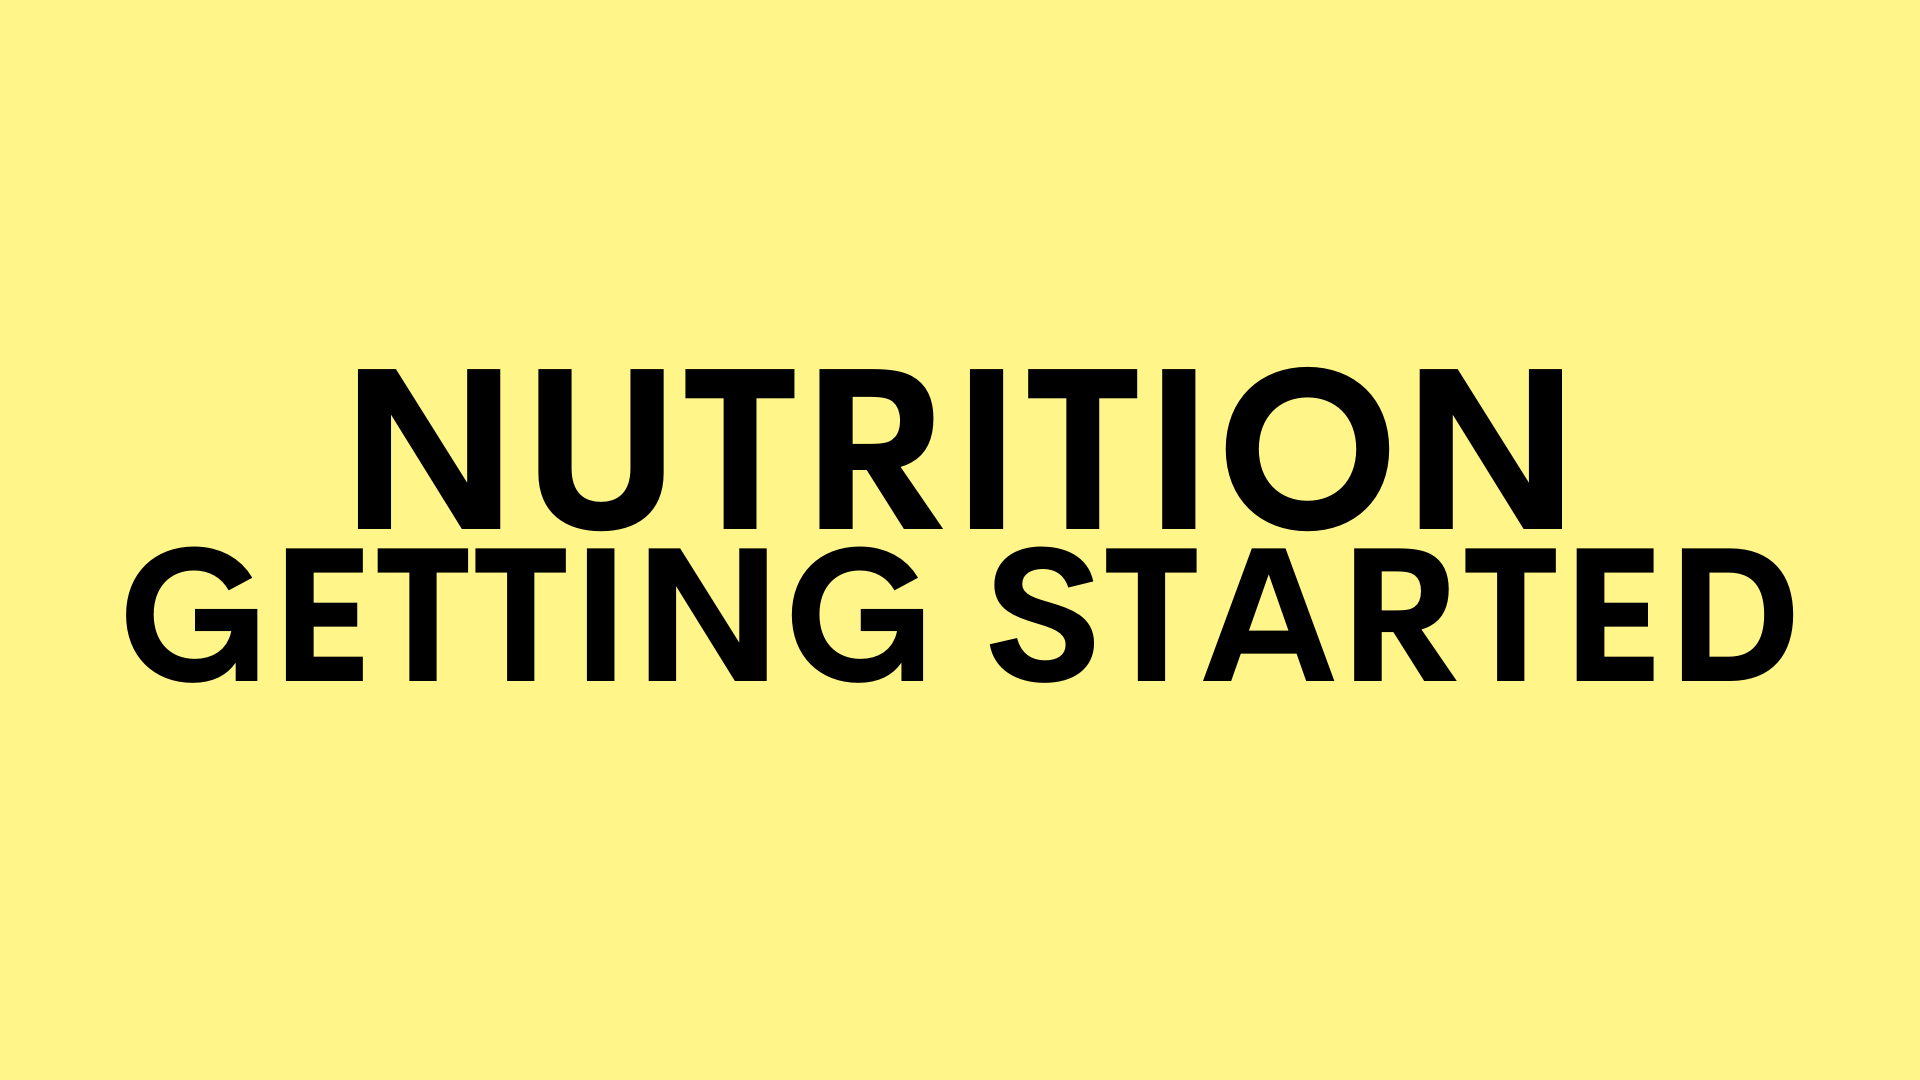 NUTRITION GETTING STARTED